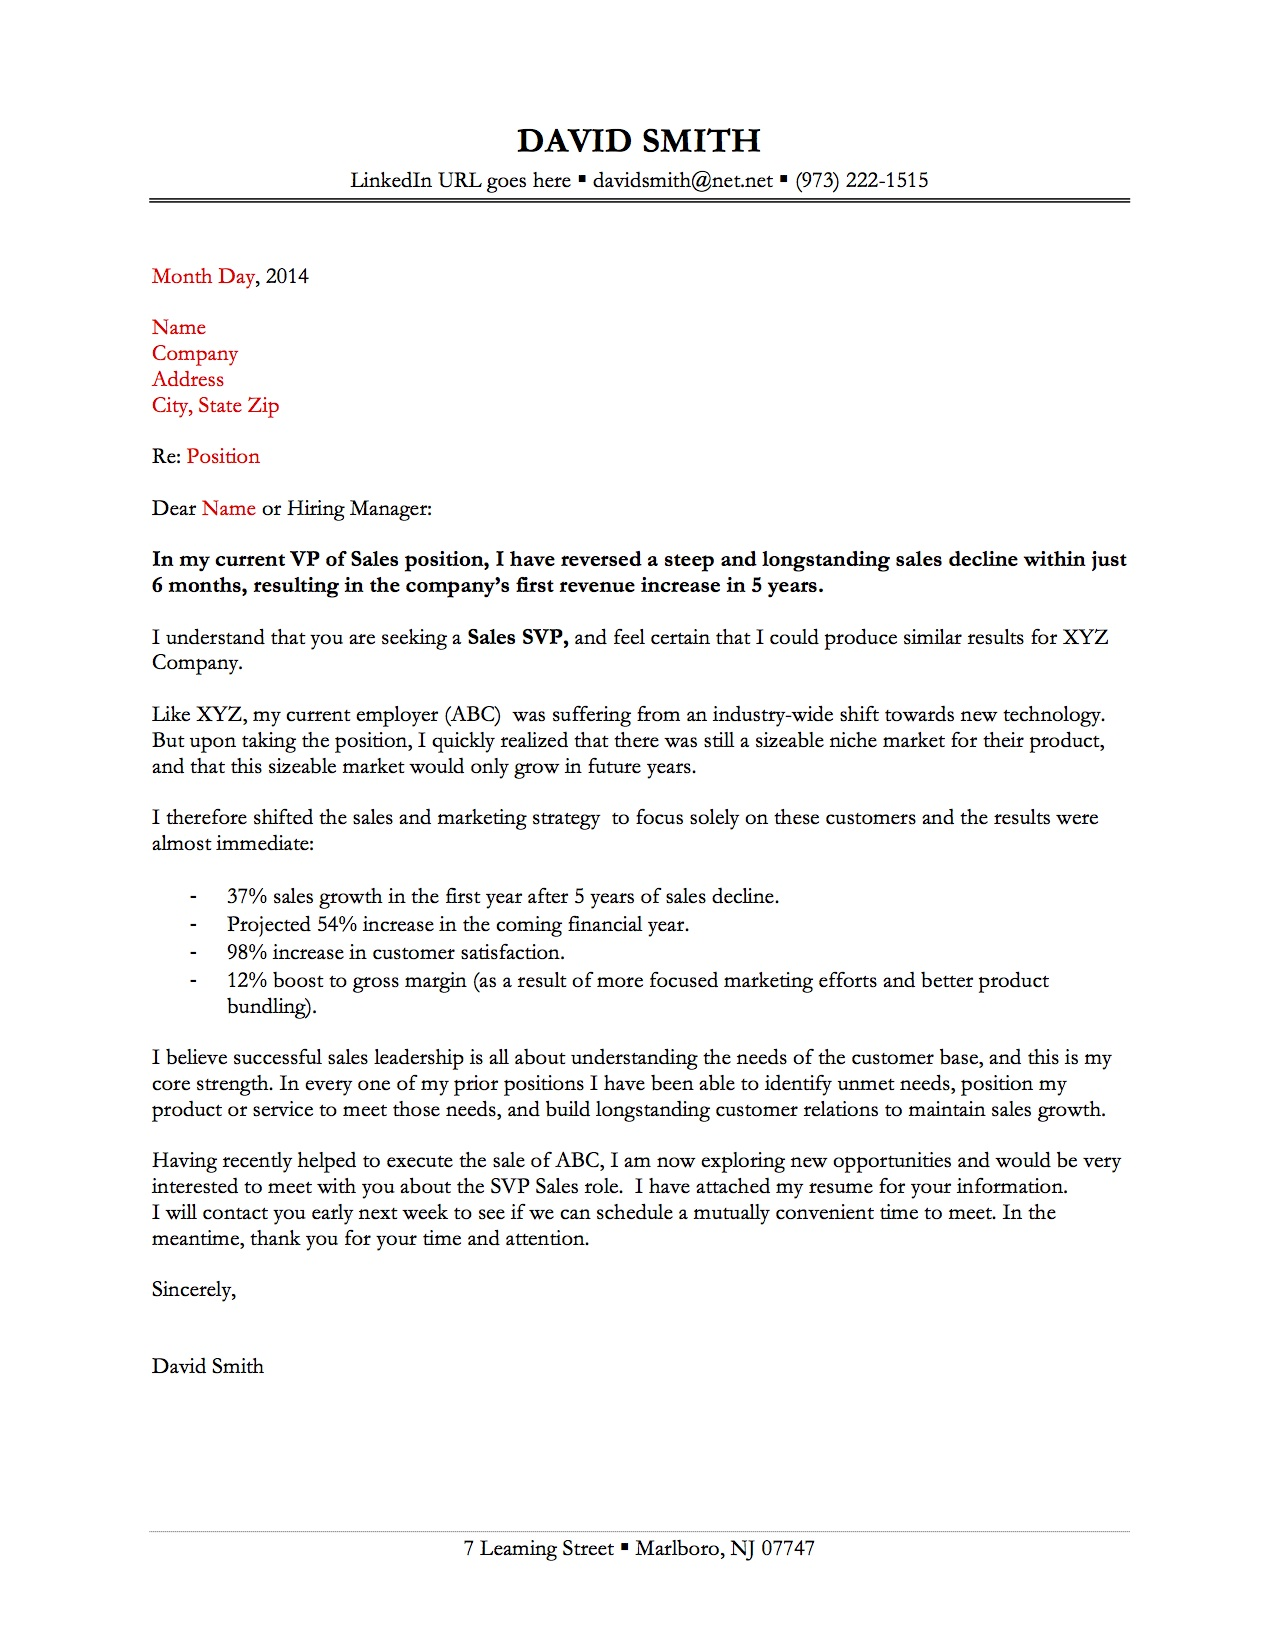 samples cover letter sample cover letter cover letter tips - How To Write A Great Cover Letter Examples